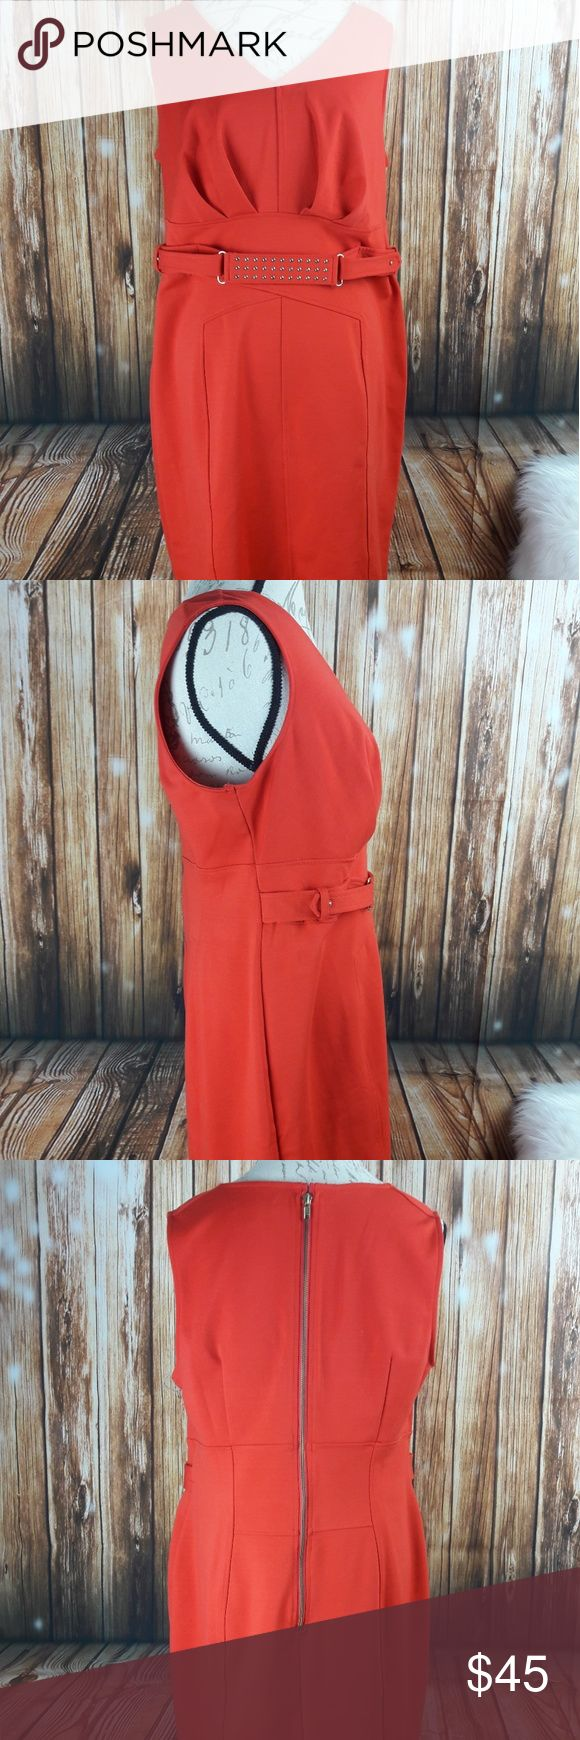 Plus size Jennifer Lopez dress Sleeveless vibrant orange dress perfect for work or a night out with the girls. Make an offer or bundle with more of your likes with a even better deal Jennifer Lopez Dresses